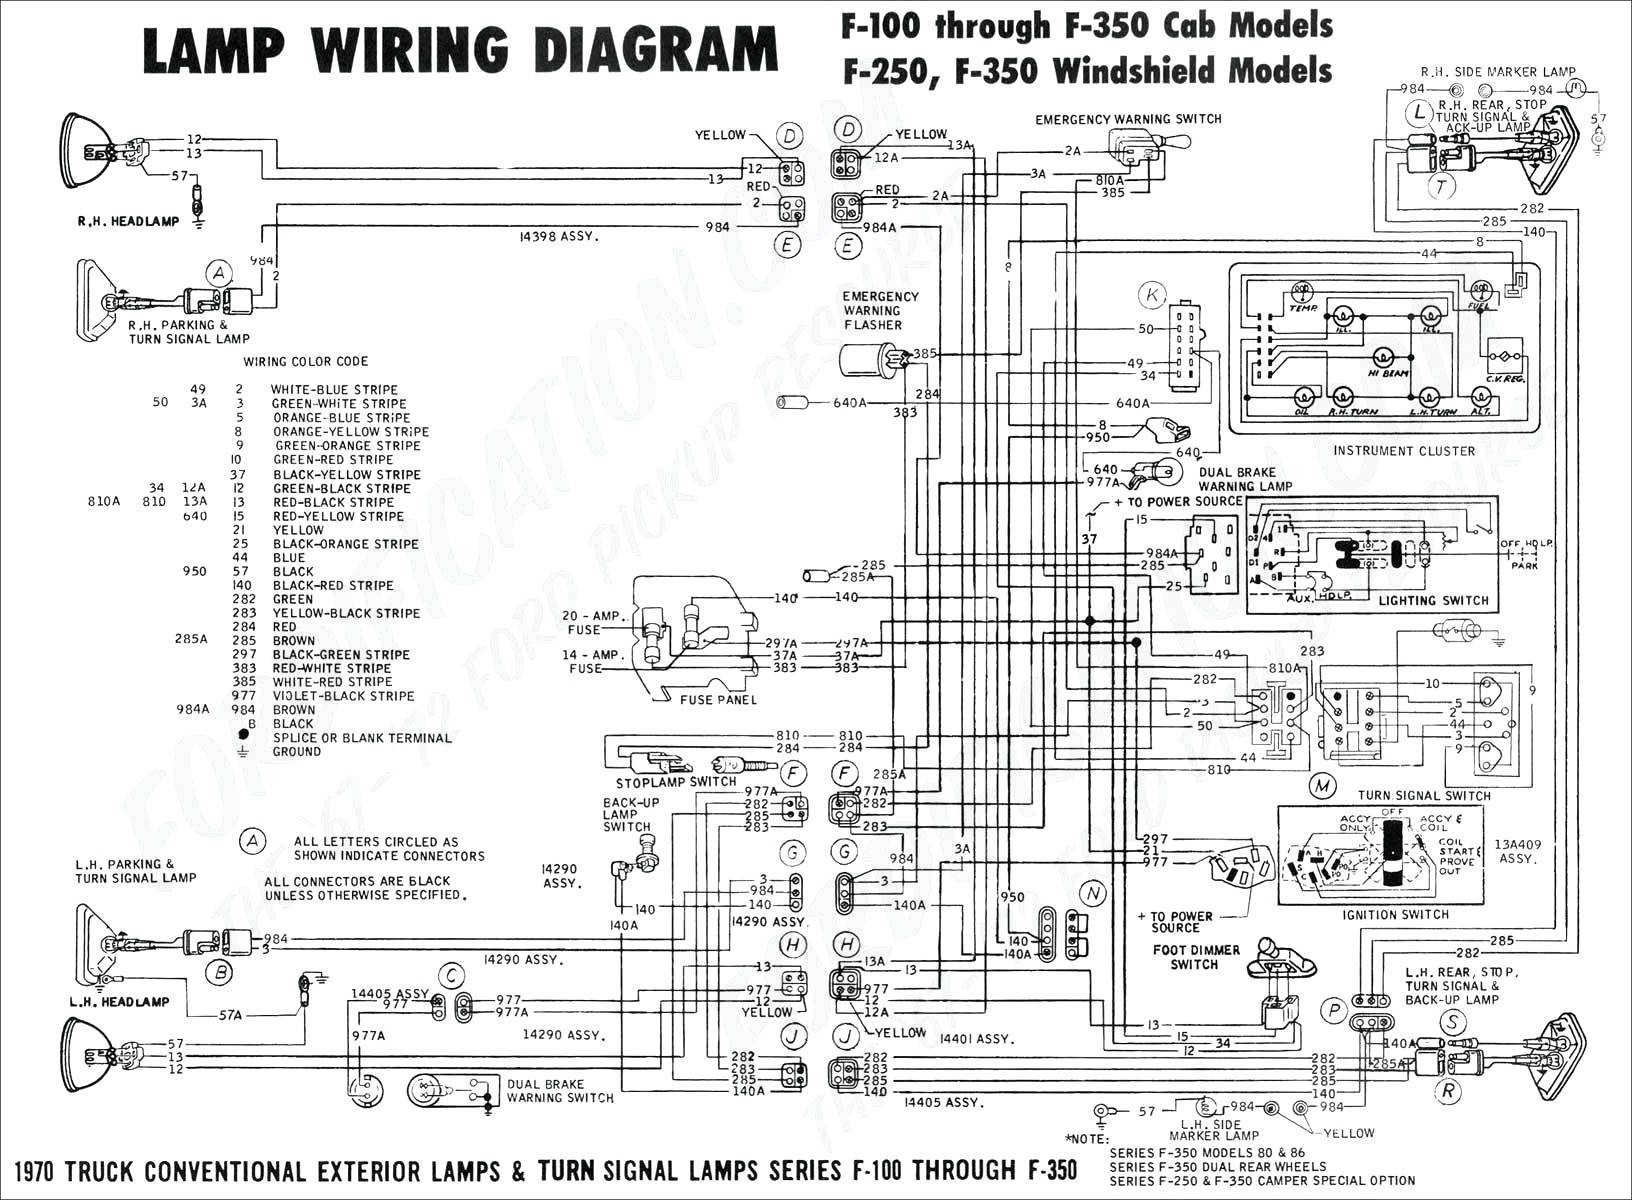 04 international wiring diagram 2004 international wiring diagram sys wiring diagrams  2004 international wiring diagram sys